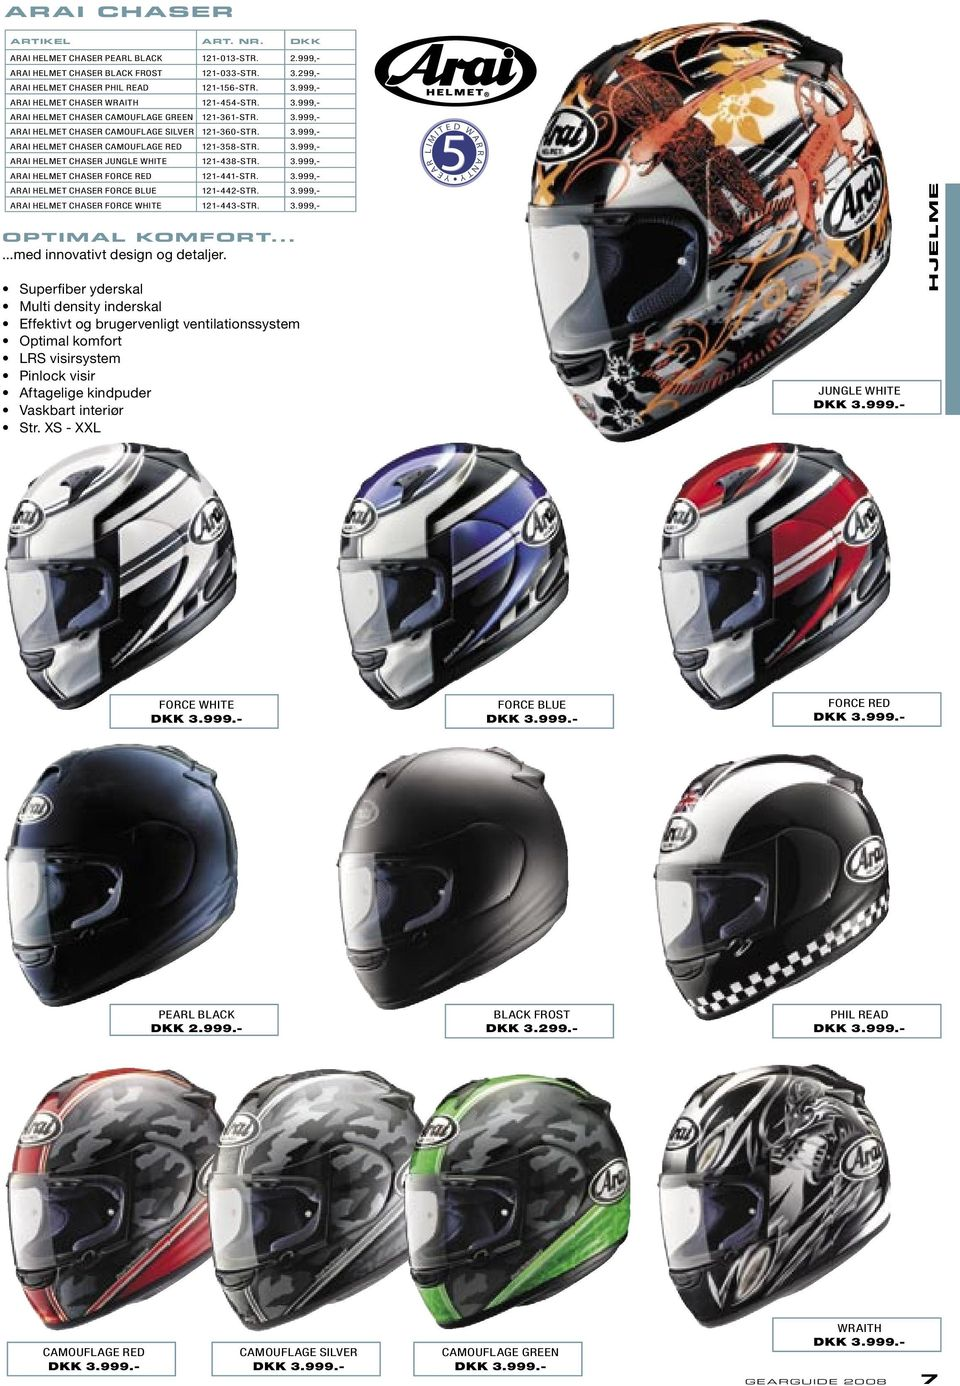 3.999,- ARAI HELMET CHASER FORCE BLUE 121-442-STR. 3.999,- ARAI HELMET CHASER FORCE WHITE 121-443-STR. 3.999,- OPTIMAL KOMFORT......med innovativt design og detaljer.